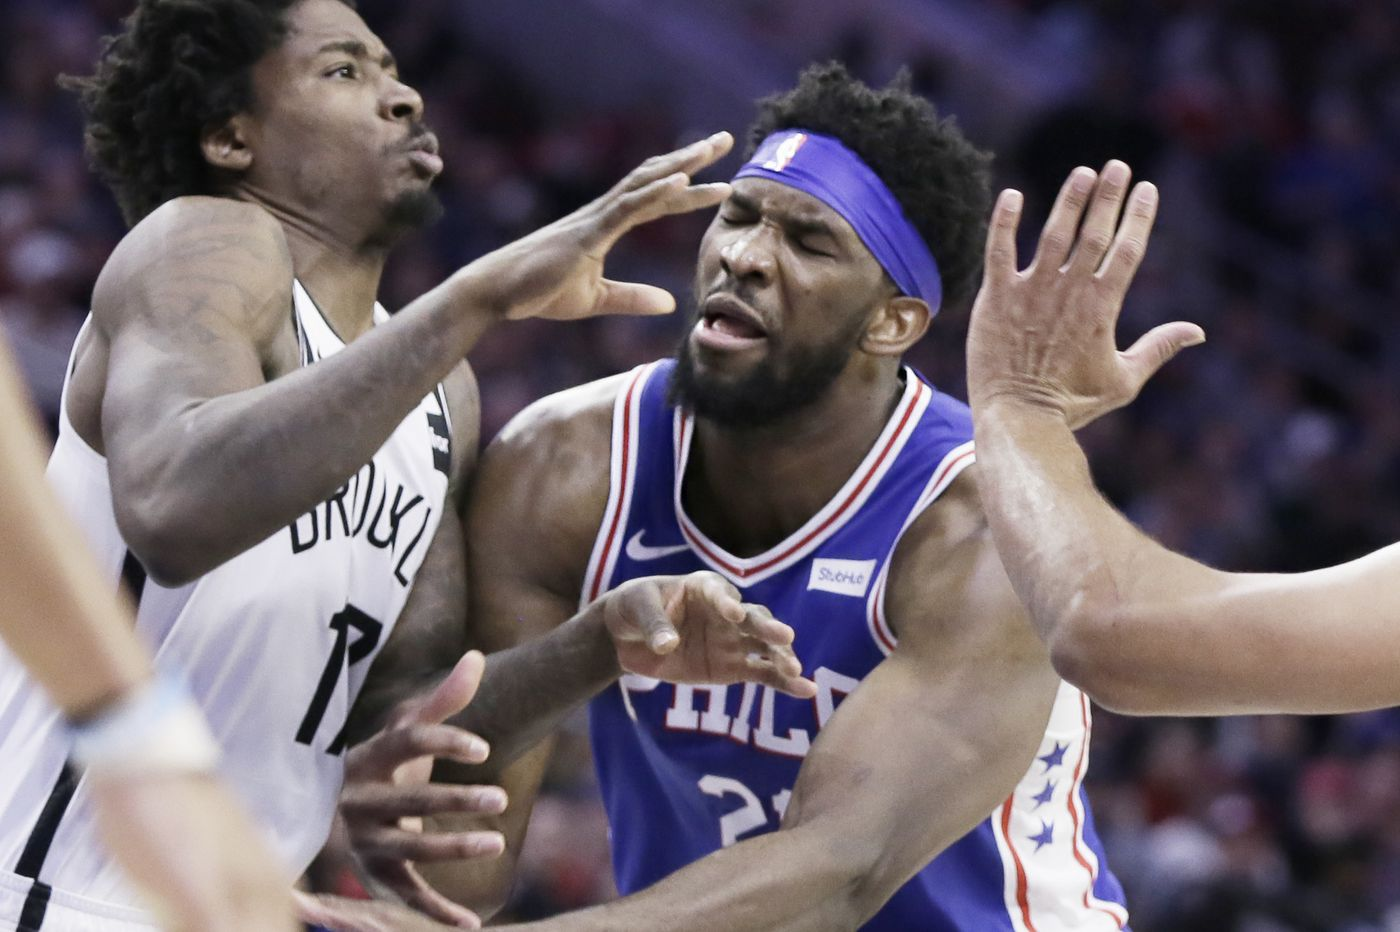 Sixers stay positive about Joel Embiid missing next three games, but his missed time could cost them in playoffs   Keith Pompey